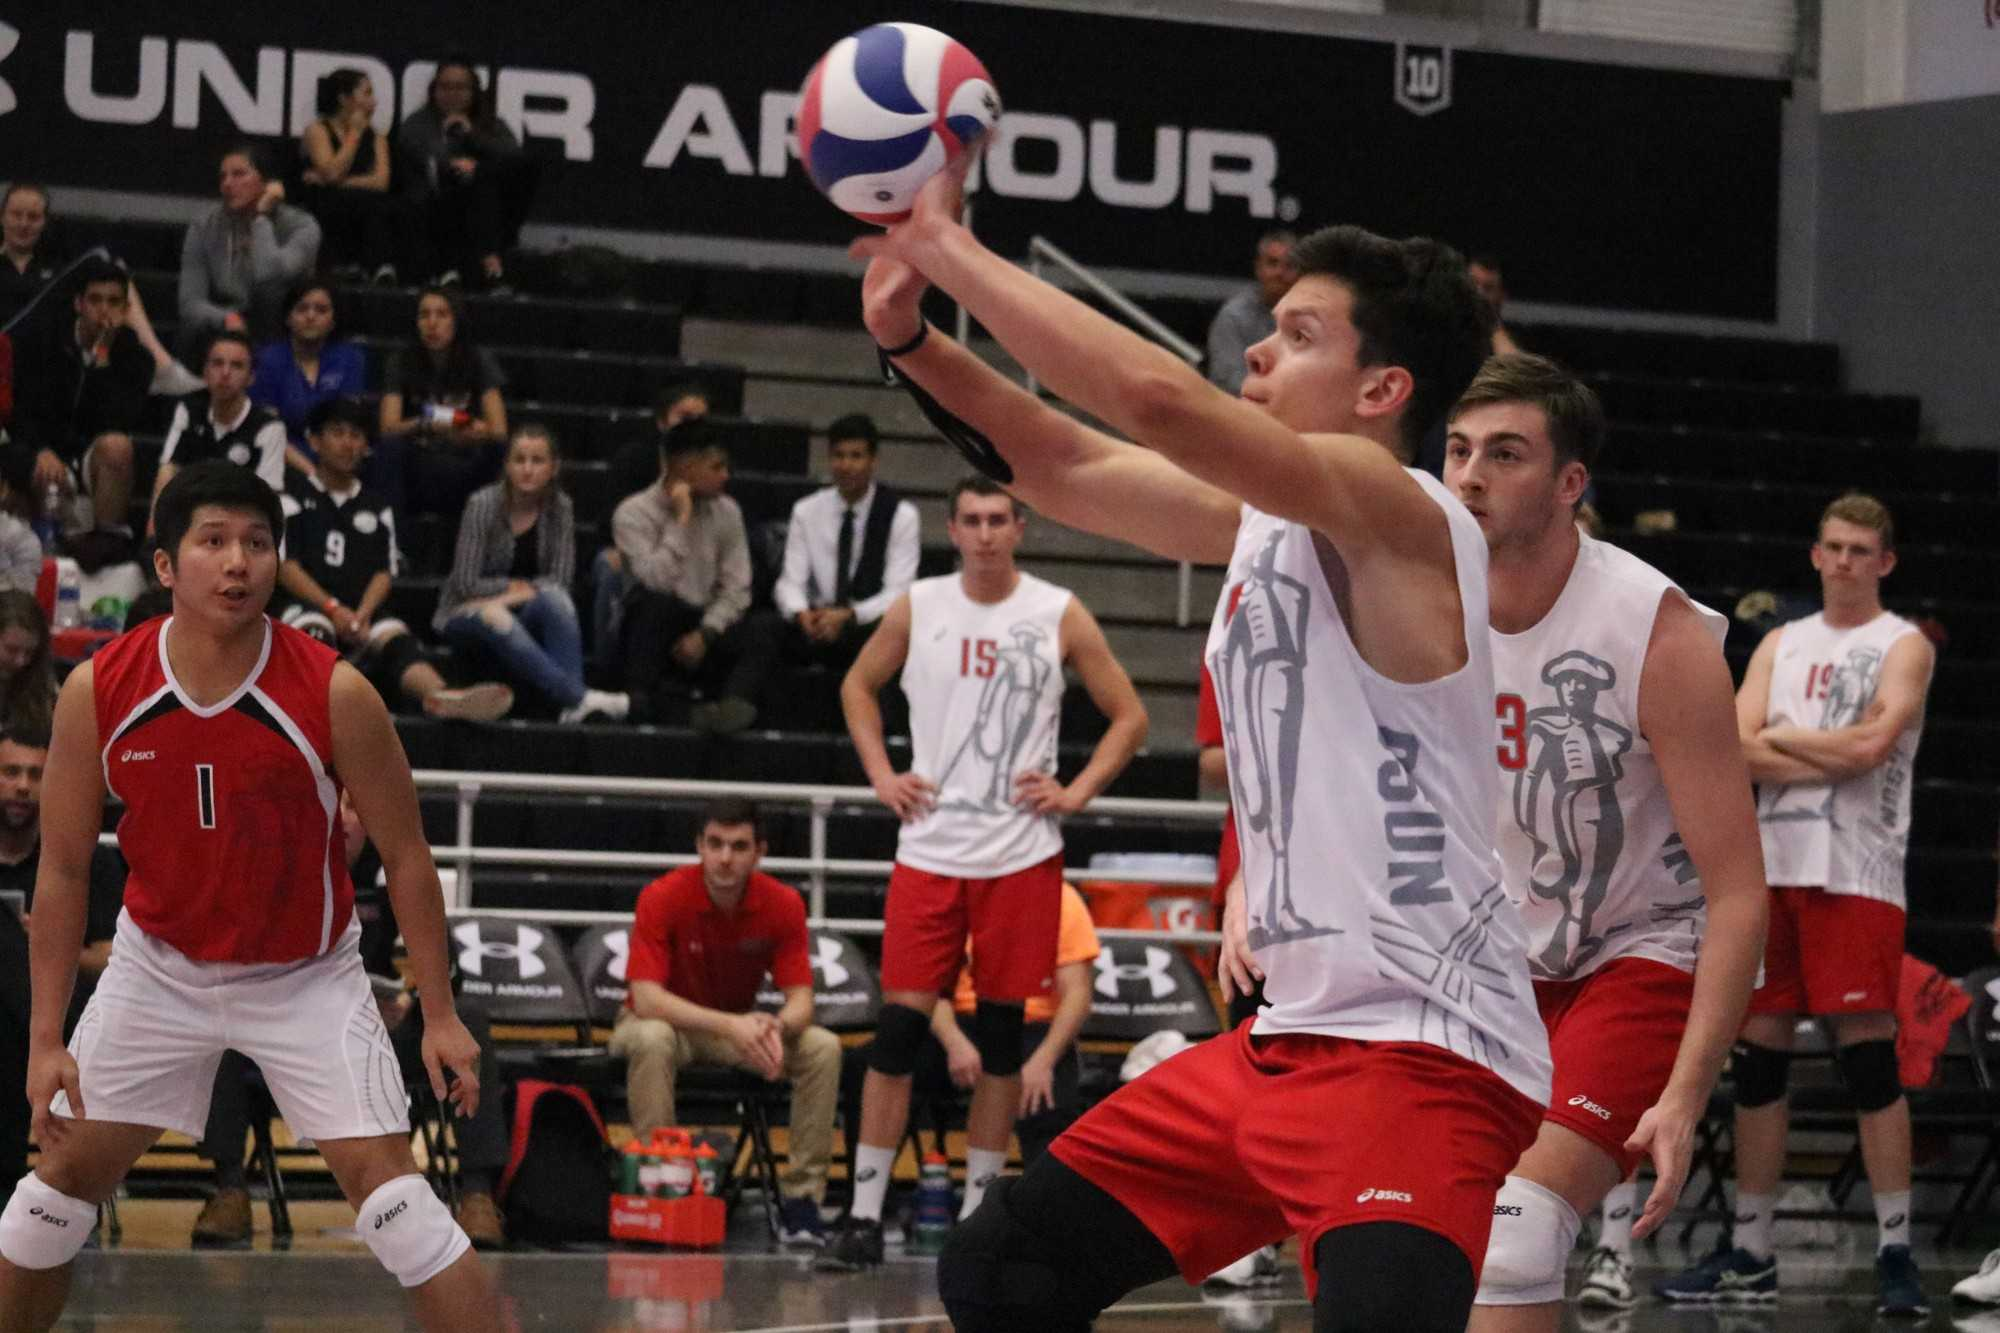 CSUN's sophomore outside hitter, Dimitar Kalchev sets the ball on Wednesday night's game against UC San Diego, on March 1, at the Matadome. Photo credit: Lauren Valencia